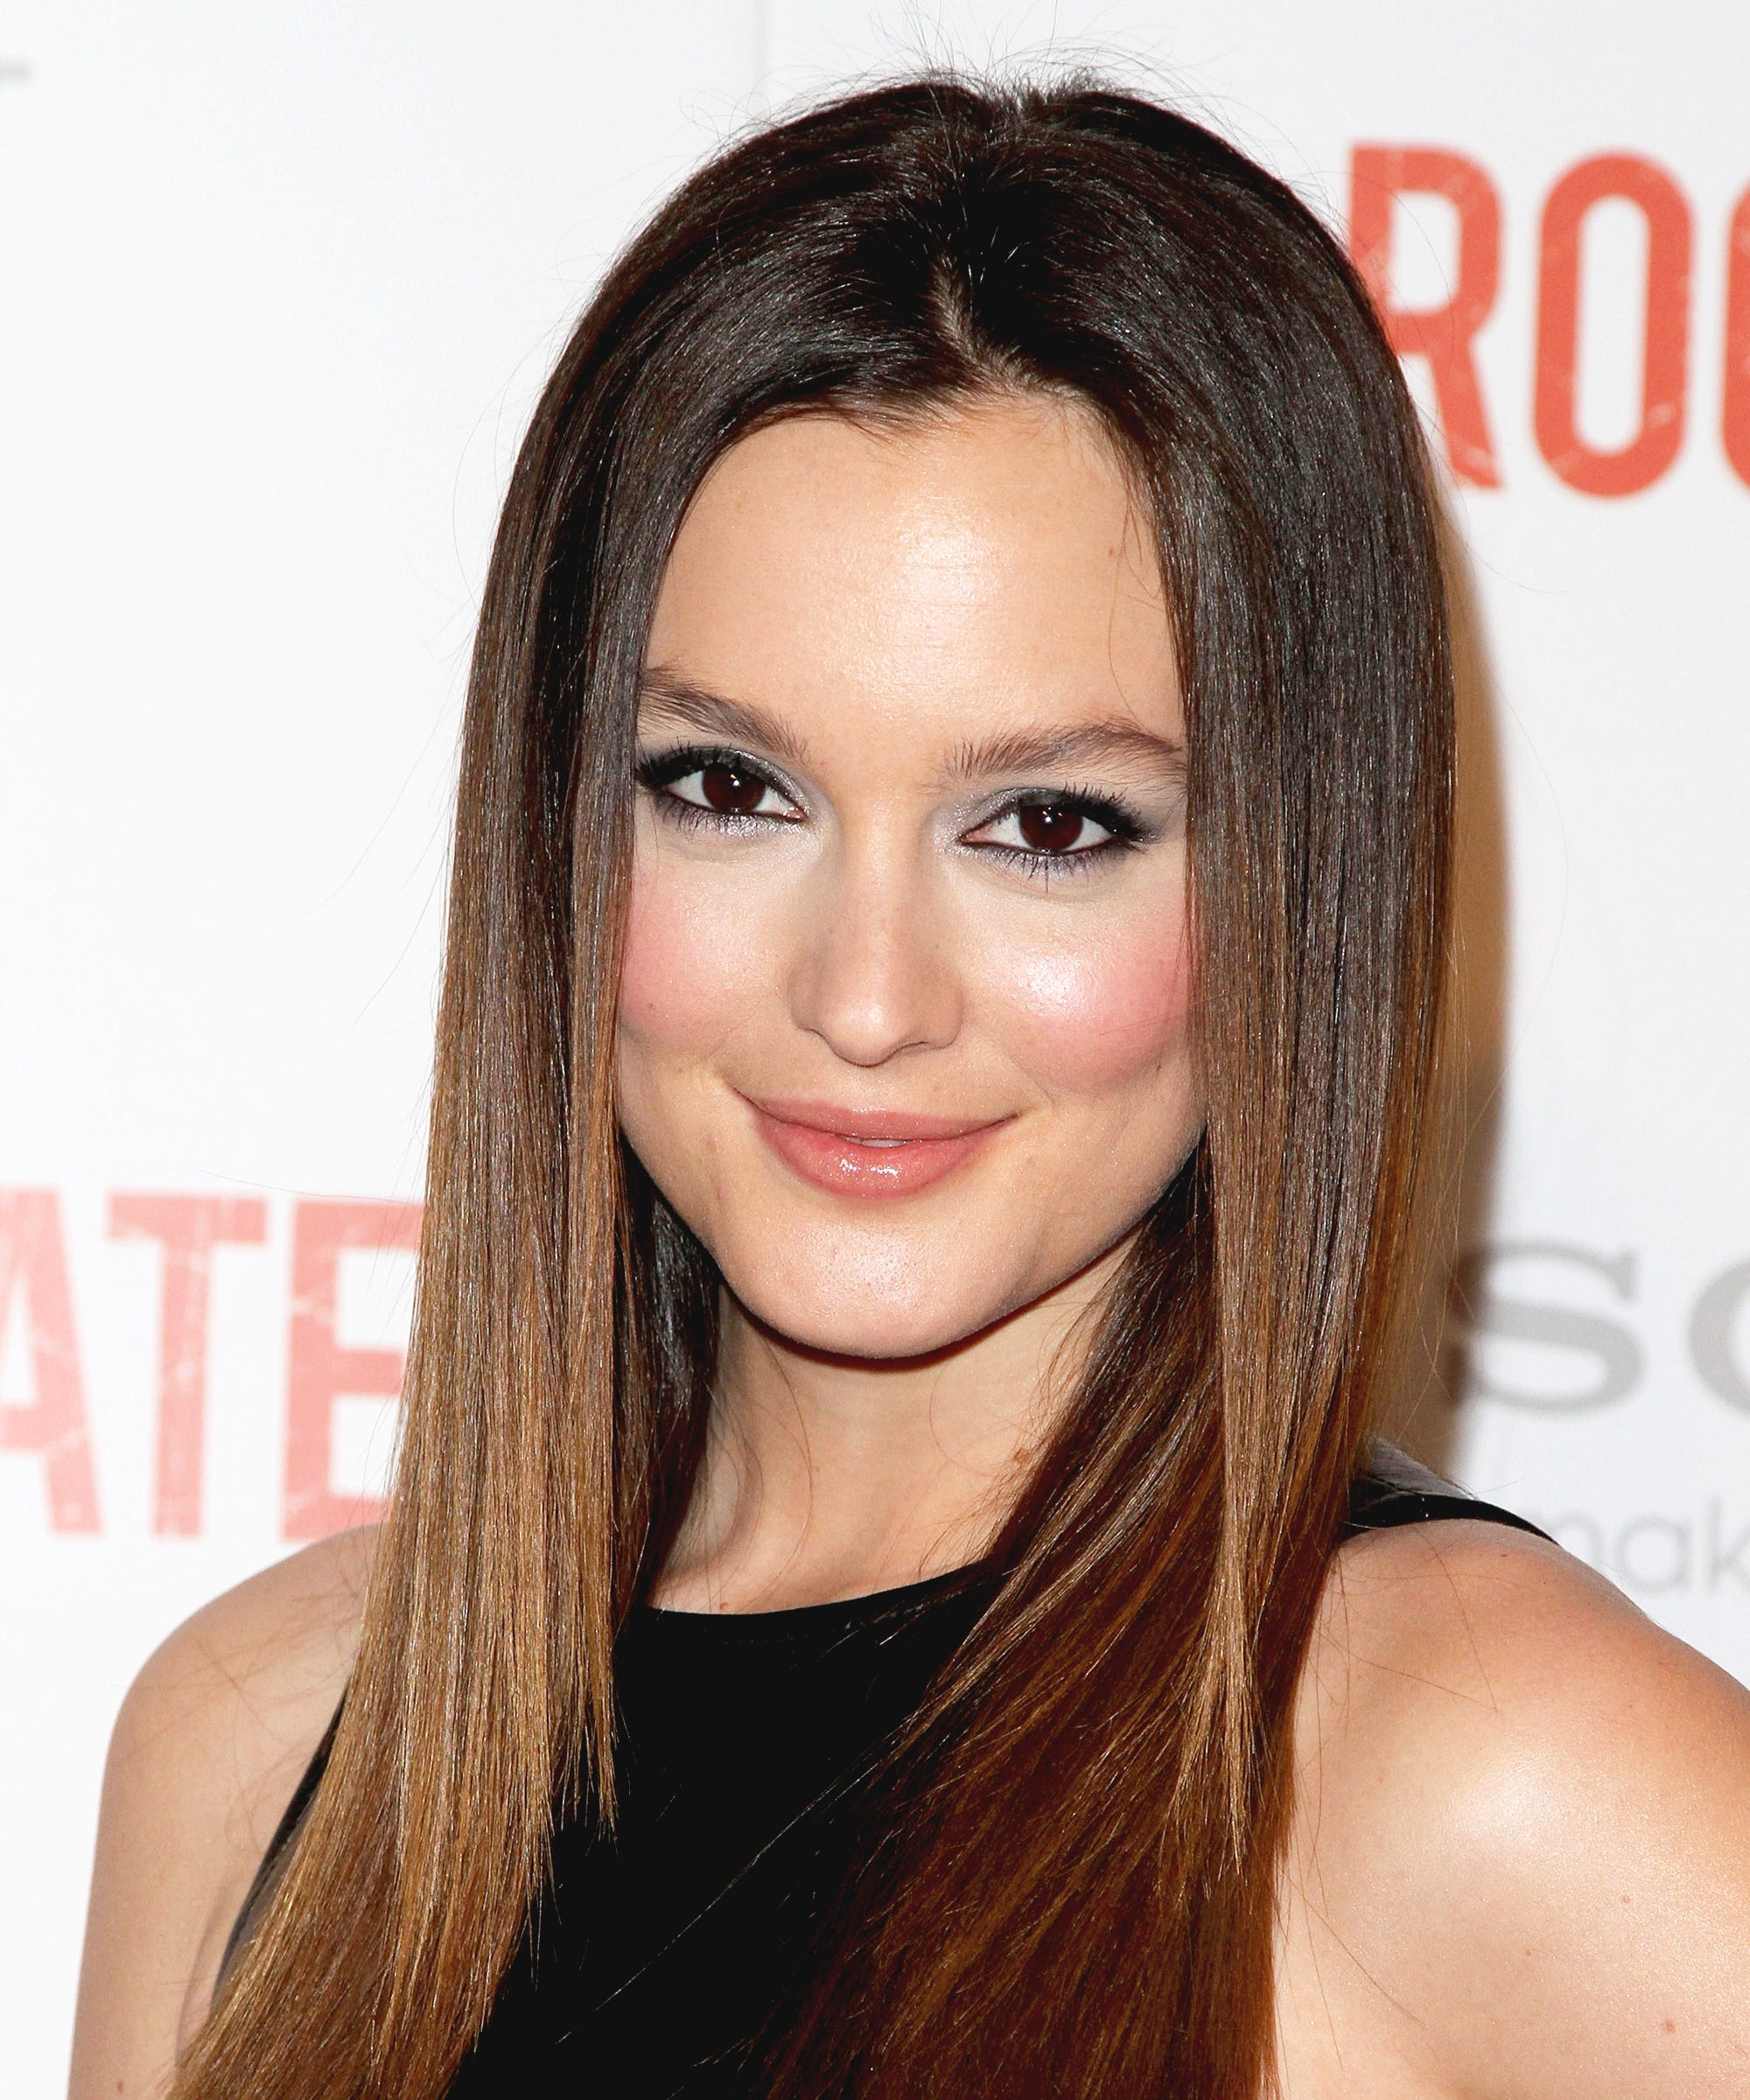 Fashion style Meester leighton straight hair for lady